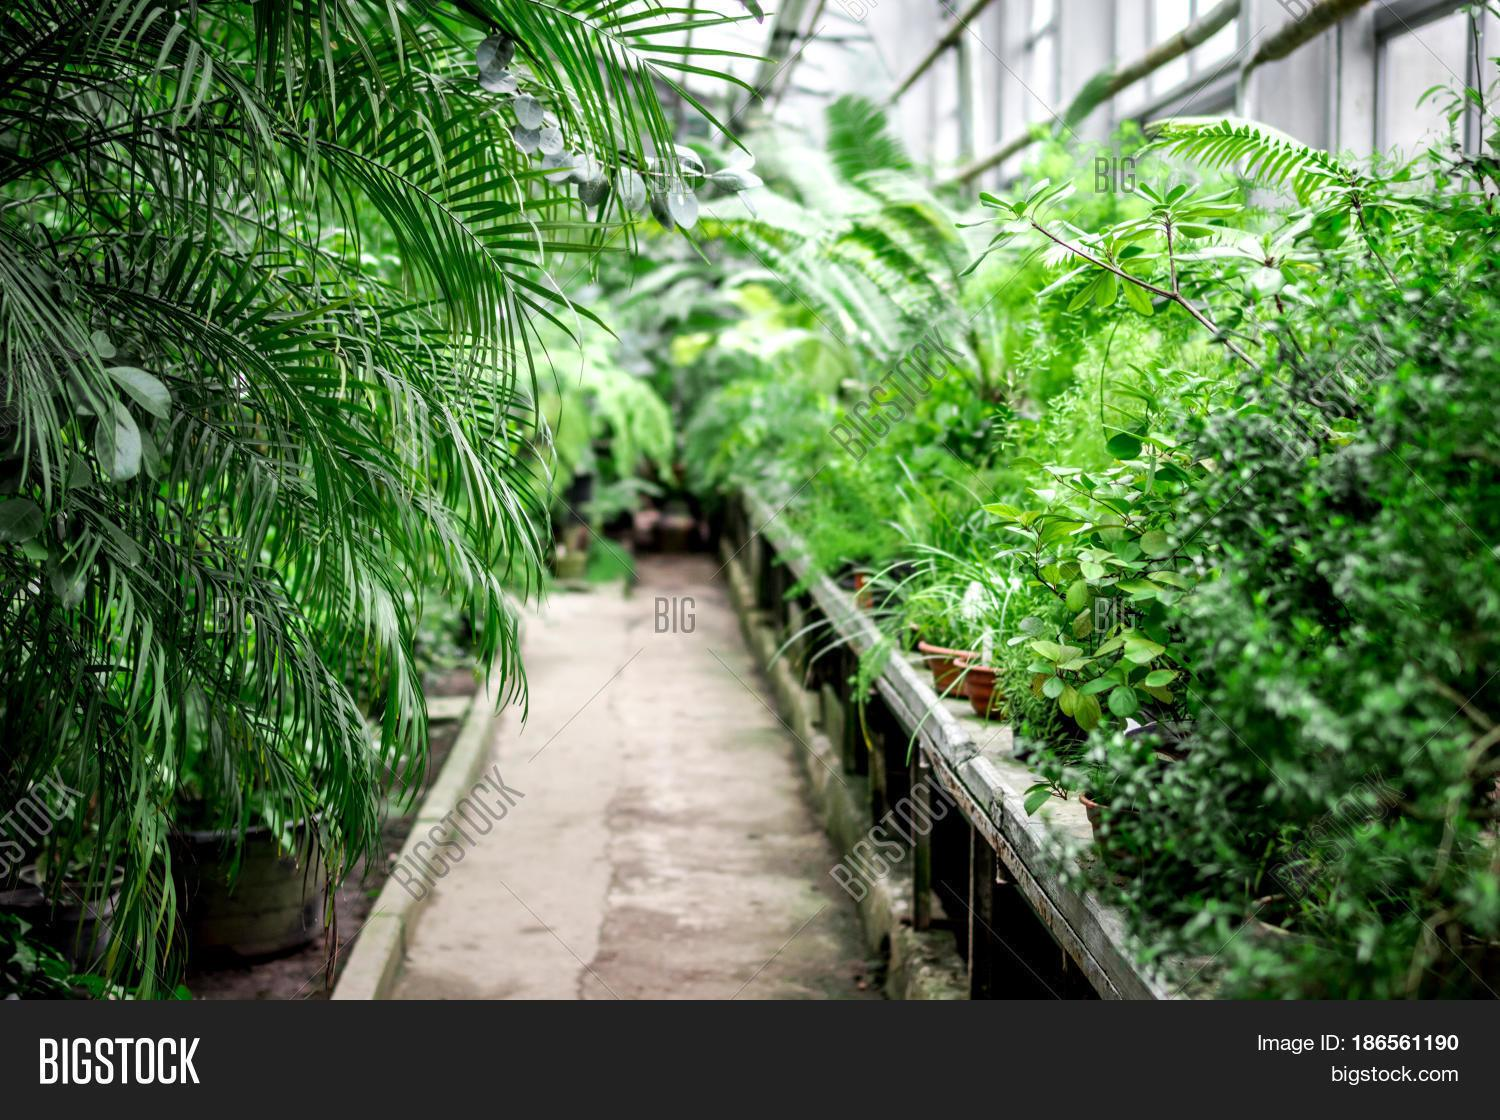 Exotic Green Plants Old Orchard Bigstock